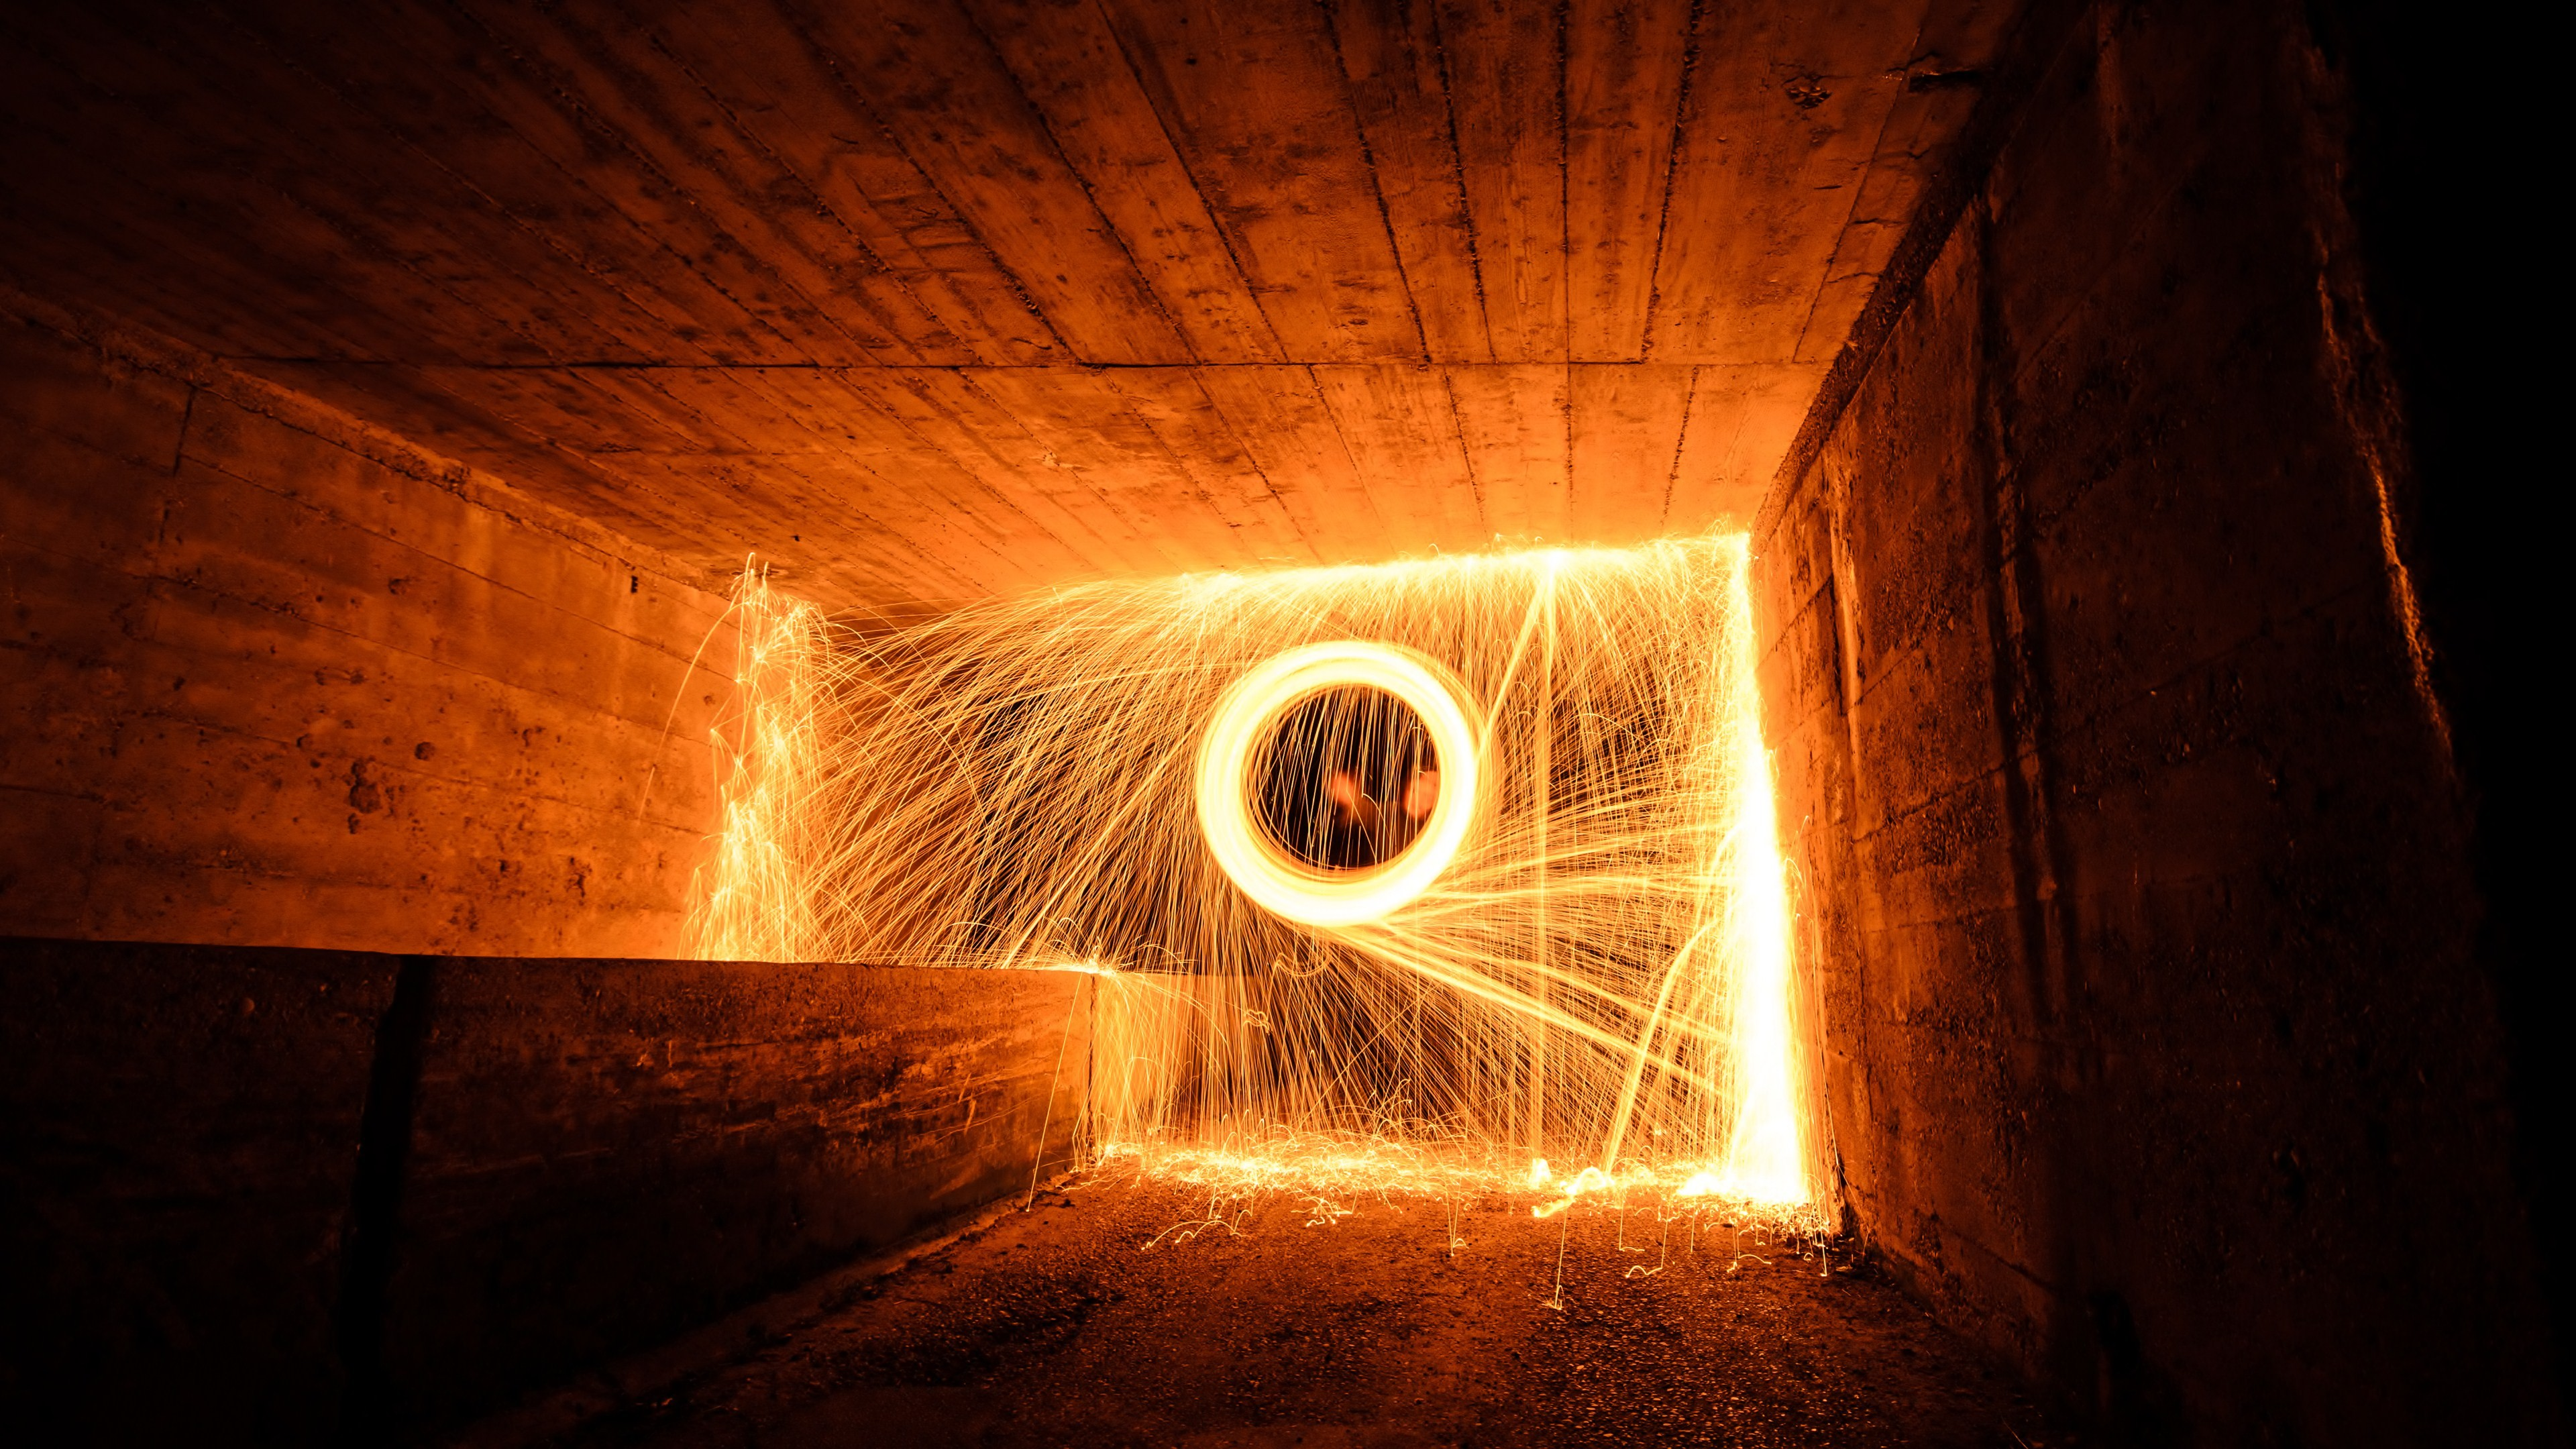 Fireworks In A Wooden Tunnel